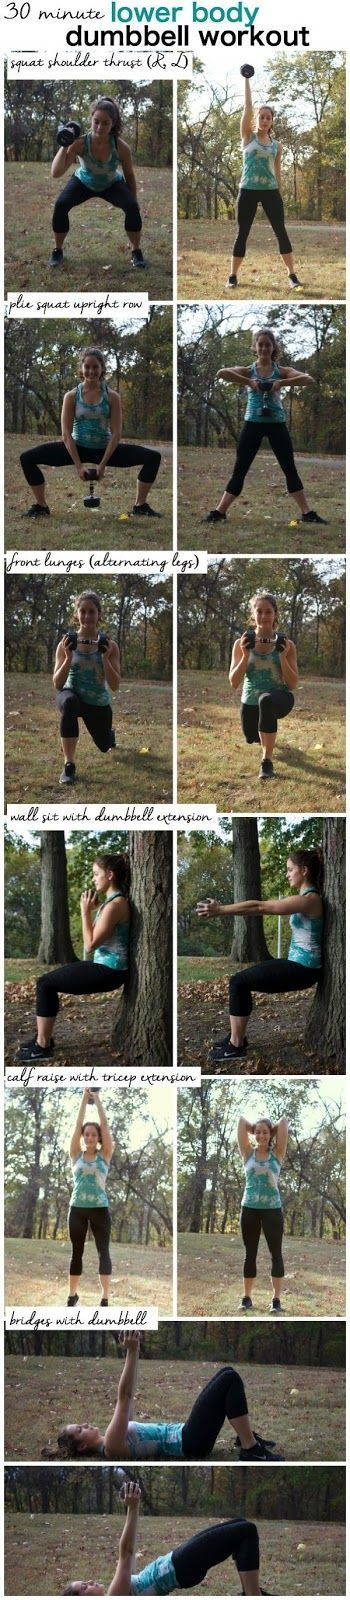 Lower Body Dummbell workout tabatta! Up the anti with this killer leg workout! http://www.connectthedotsginger.com